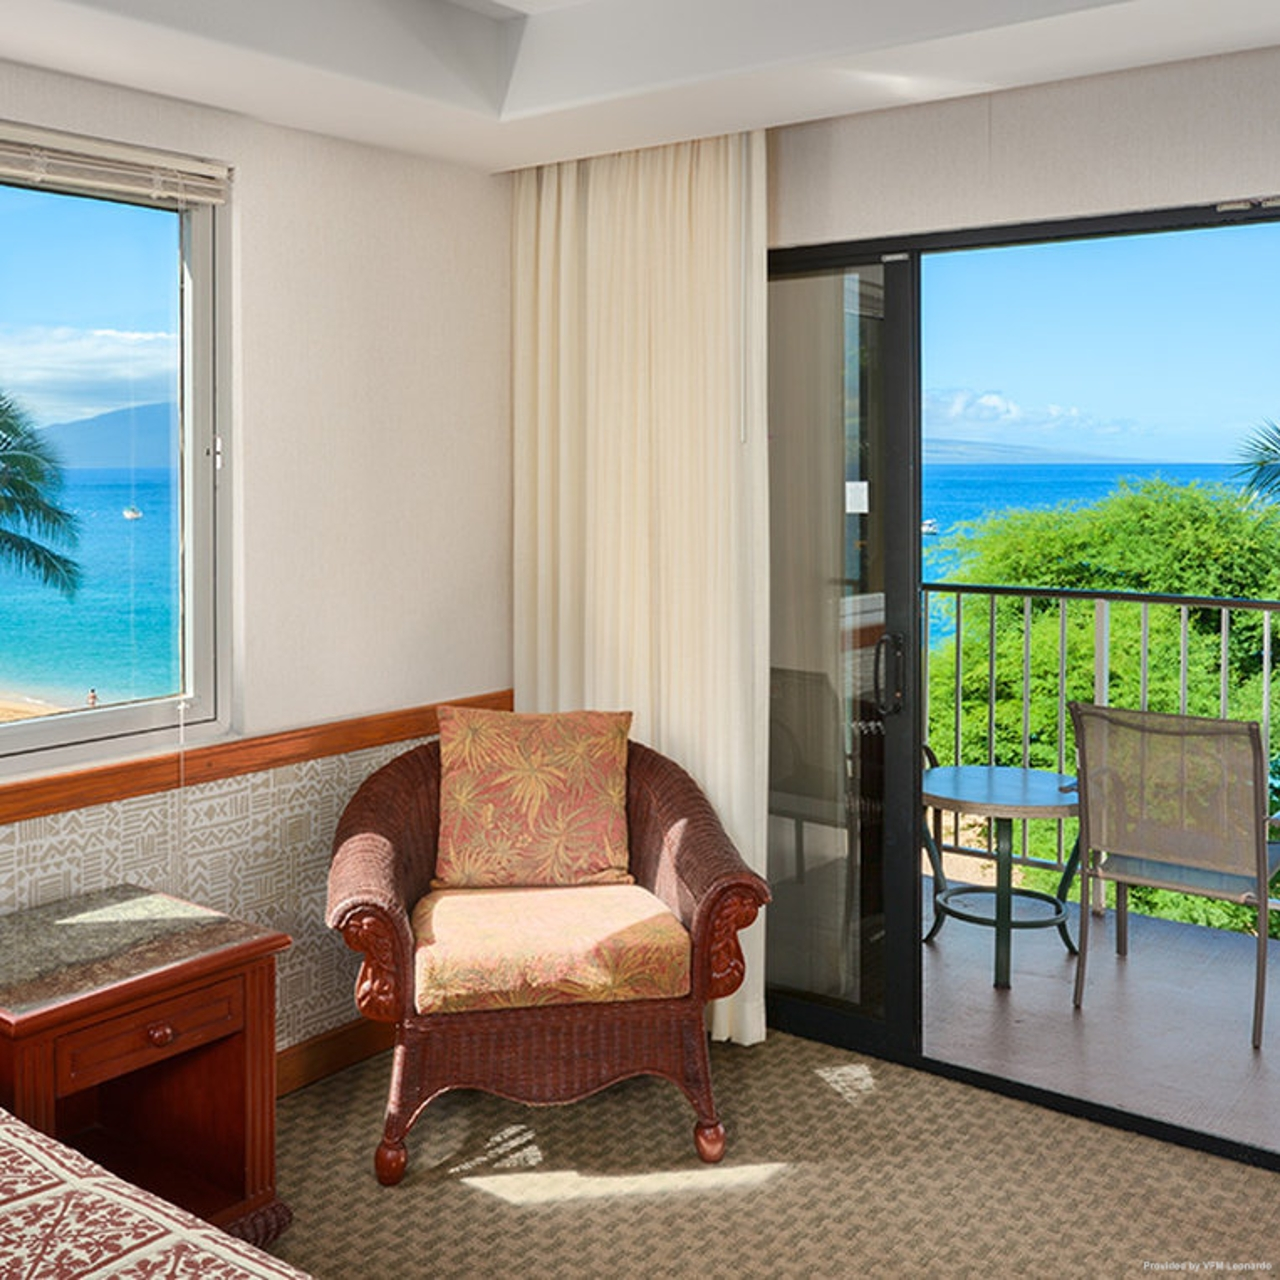 Kaanapali Beach Hotel United States Of America At Hrs With Free Services